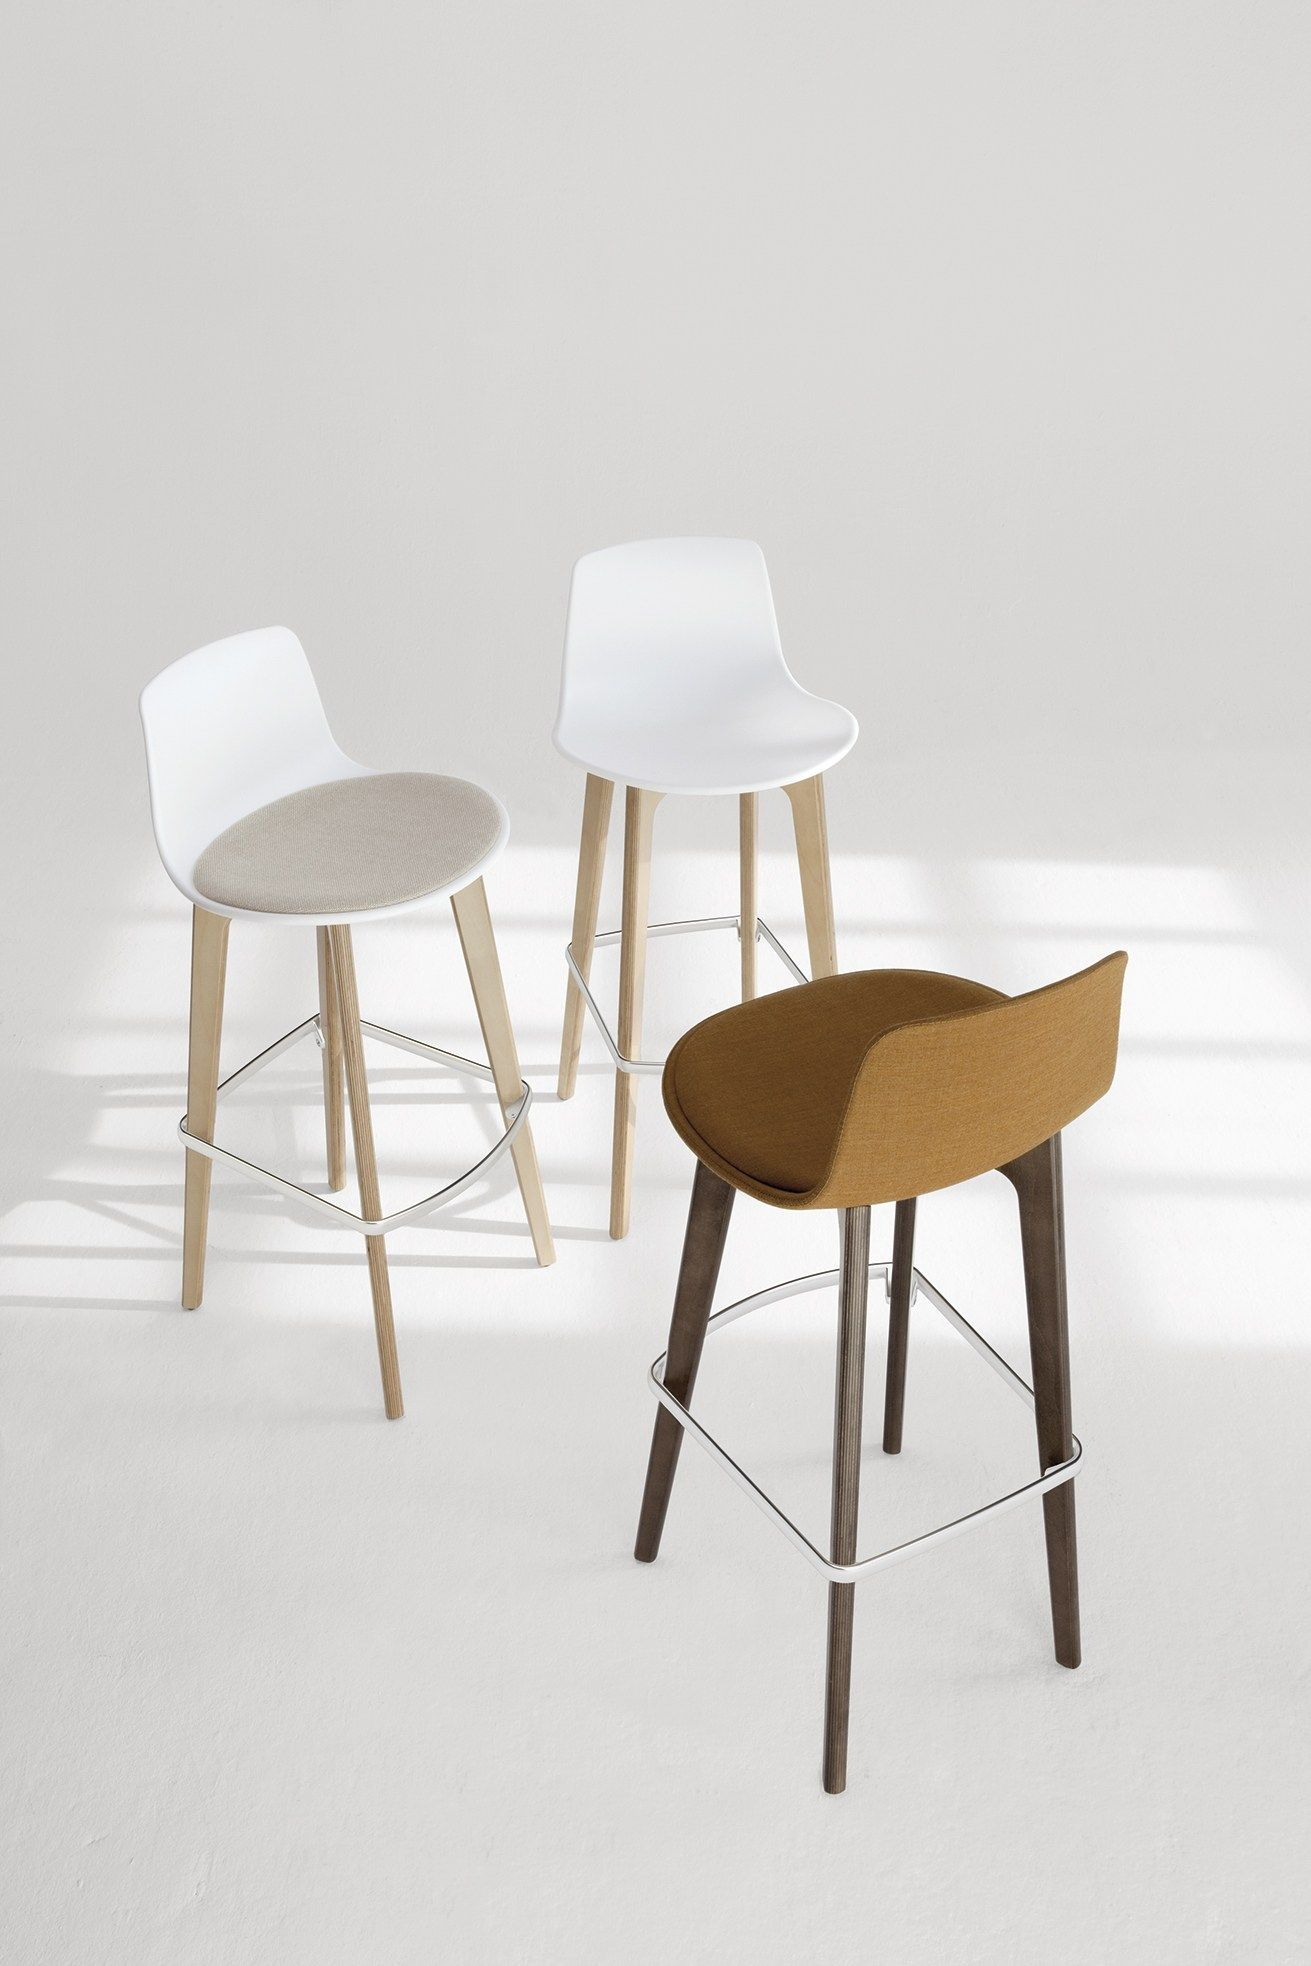 lottus wood counter stool by enea design lievore altherr molina